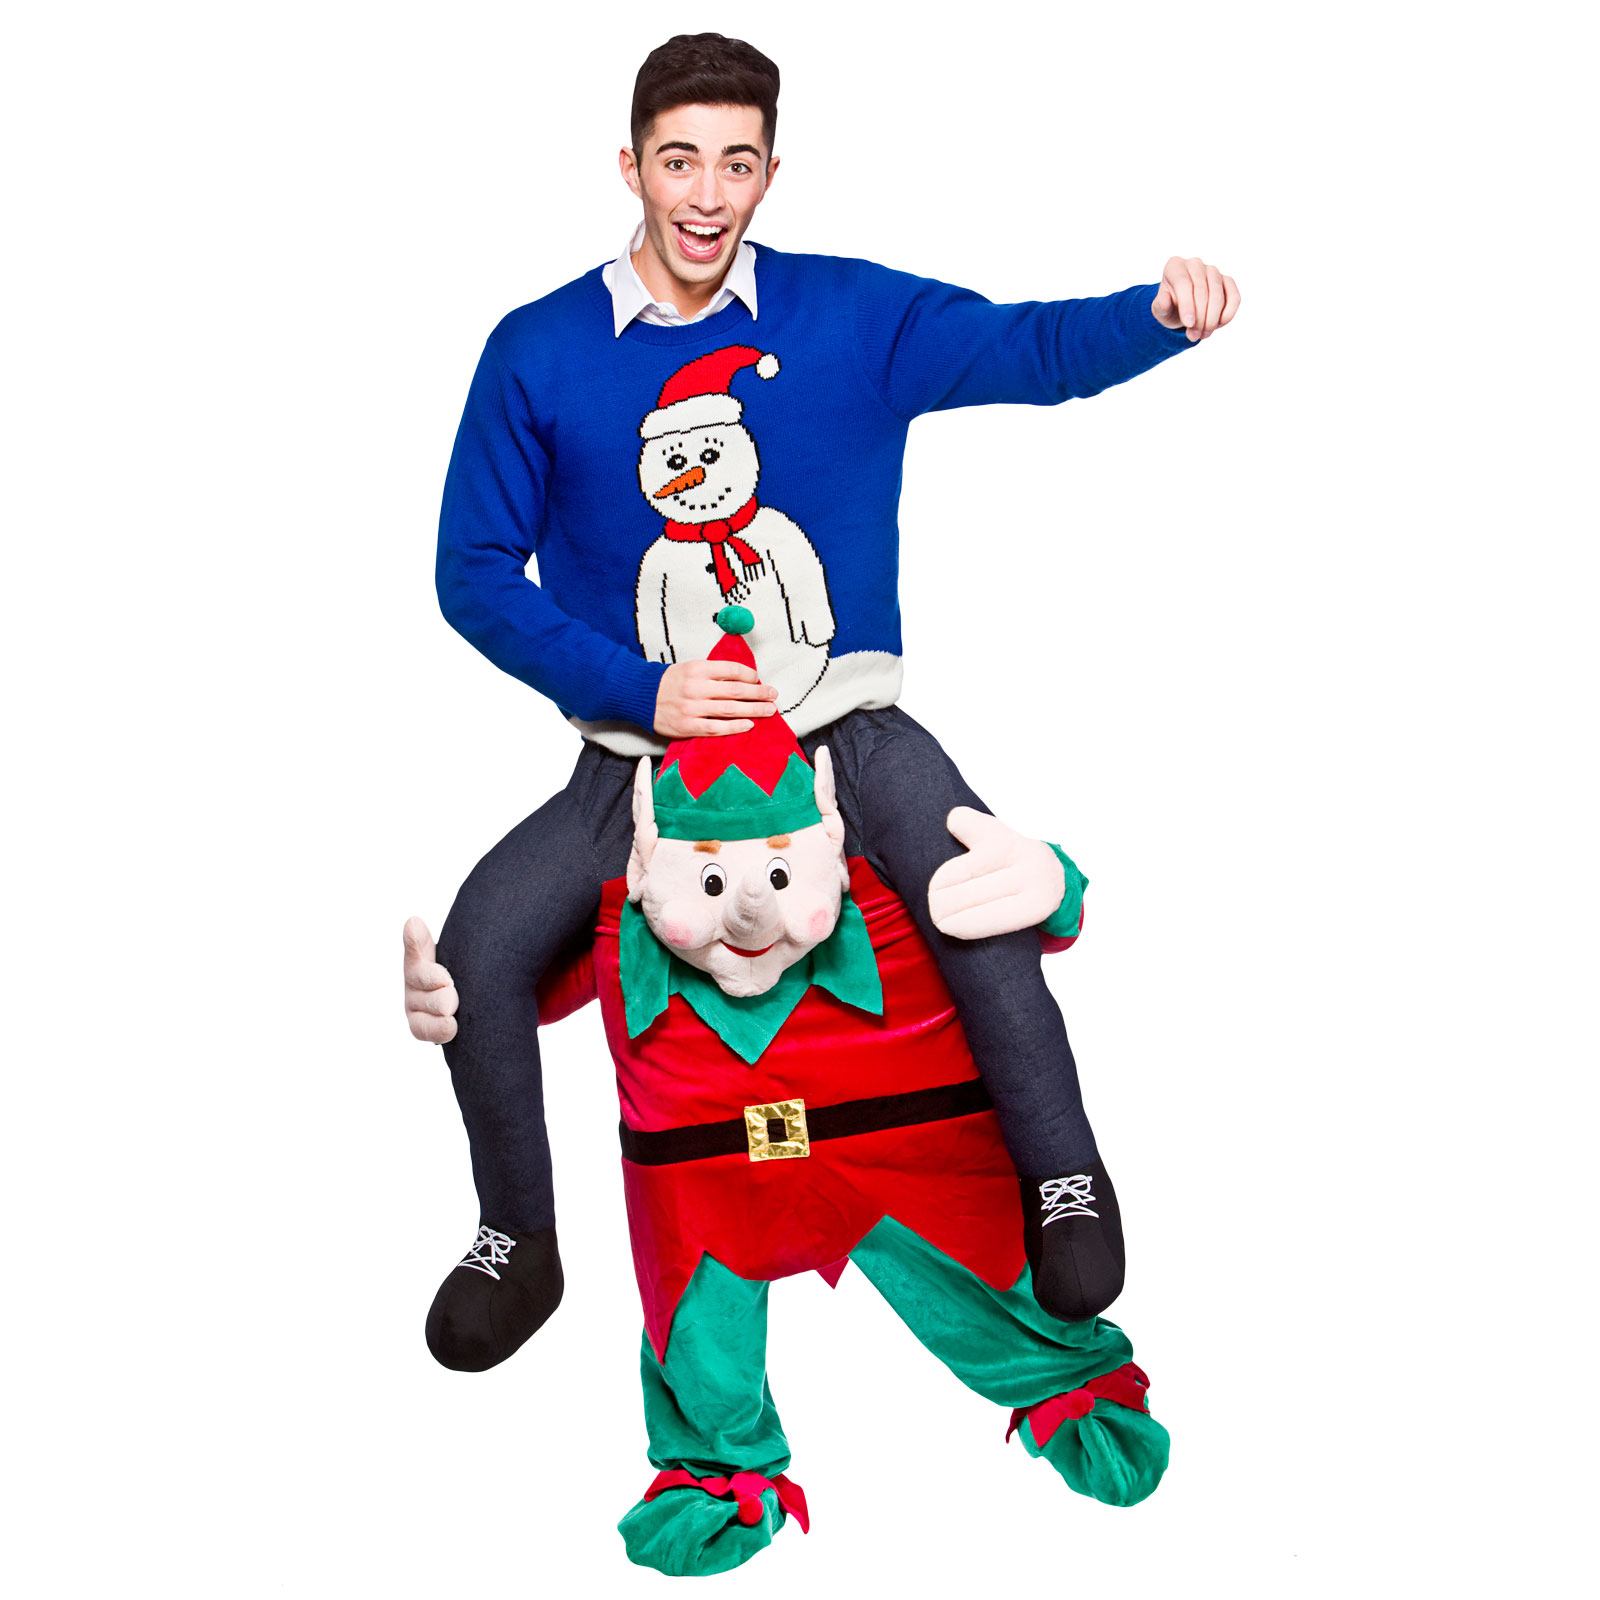 Christmas dress up - Adults Carry Me Elf Festive Christmas Fancy Dress Up Party Mascot Costume Outfit